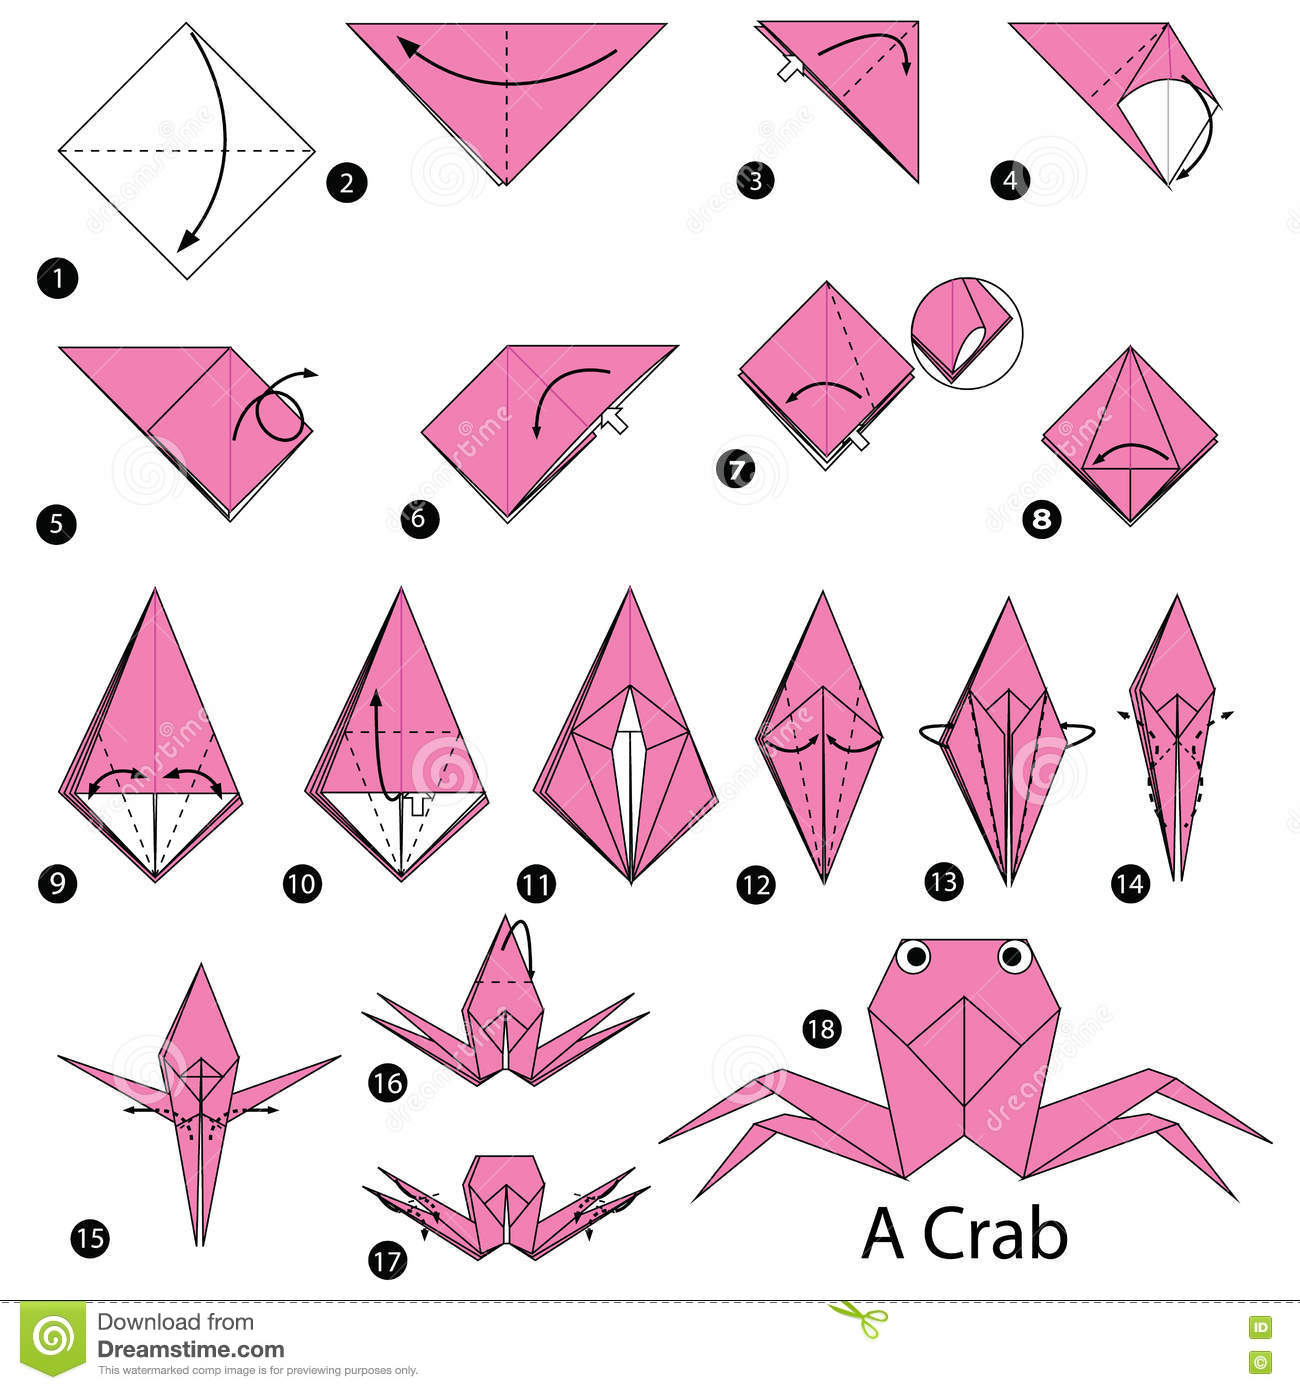 step by step instructions how to make origami a crab